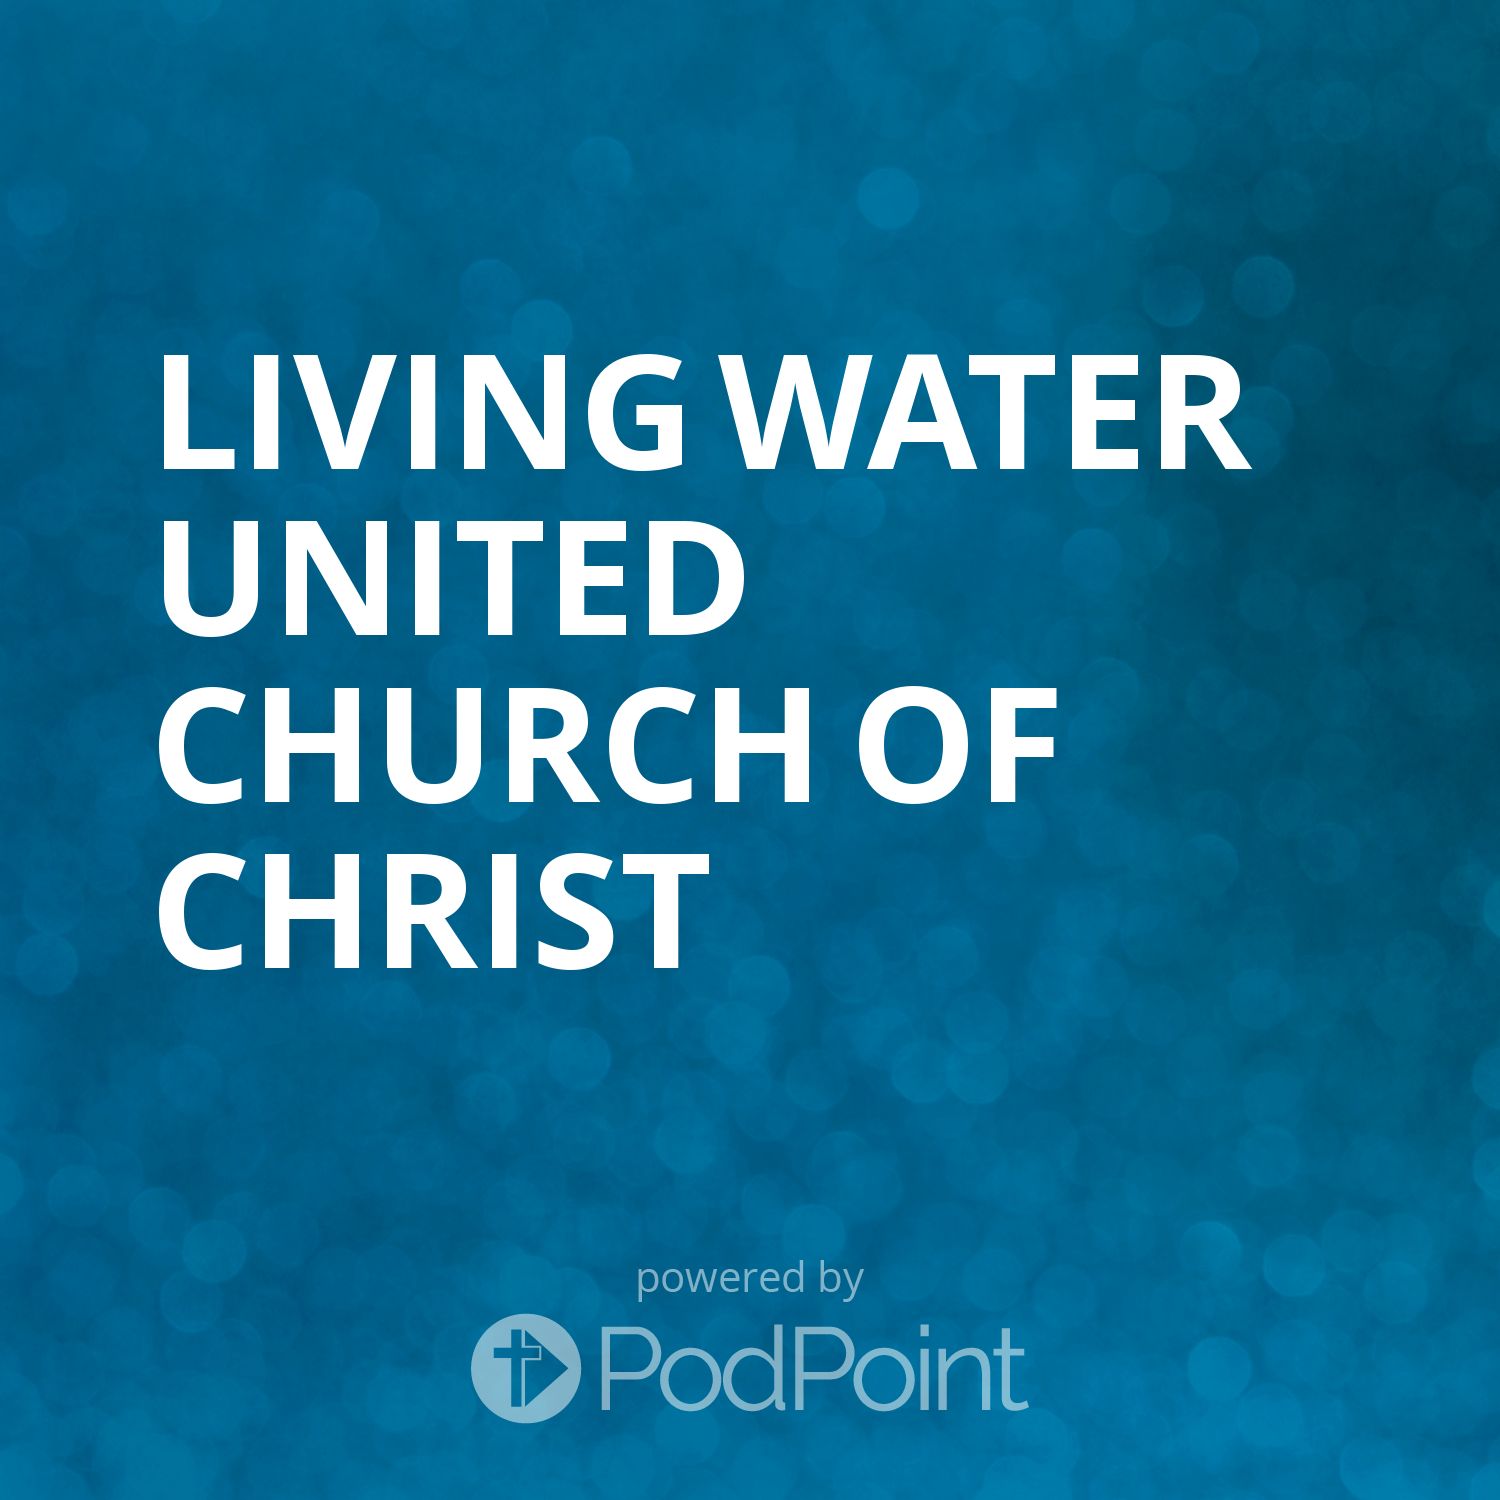 Living Water United Church of Christ